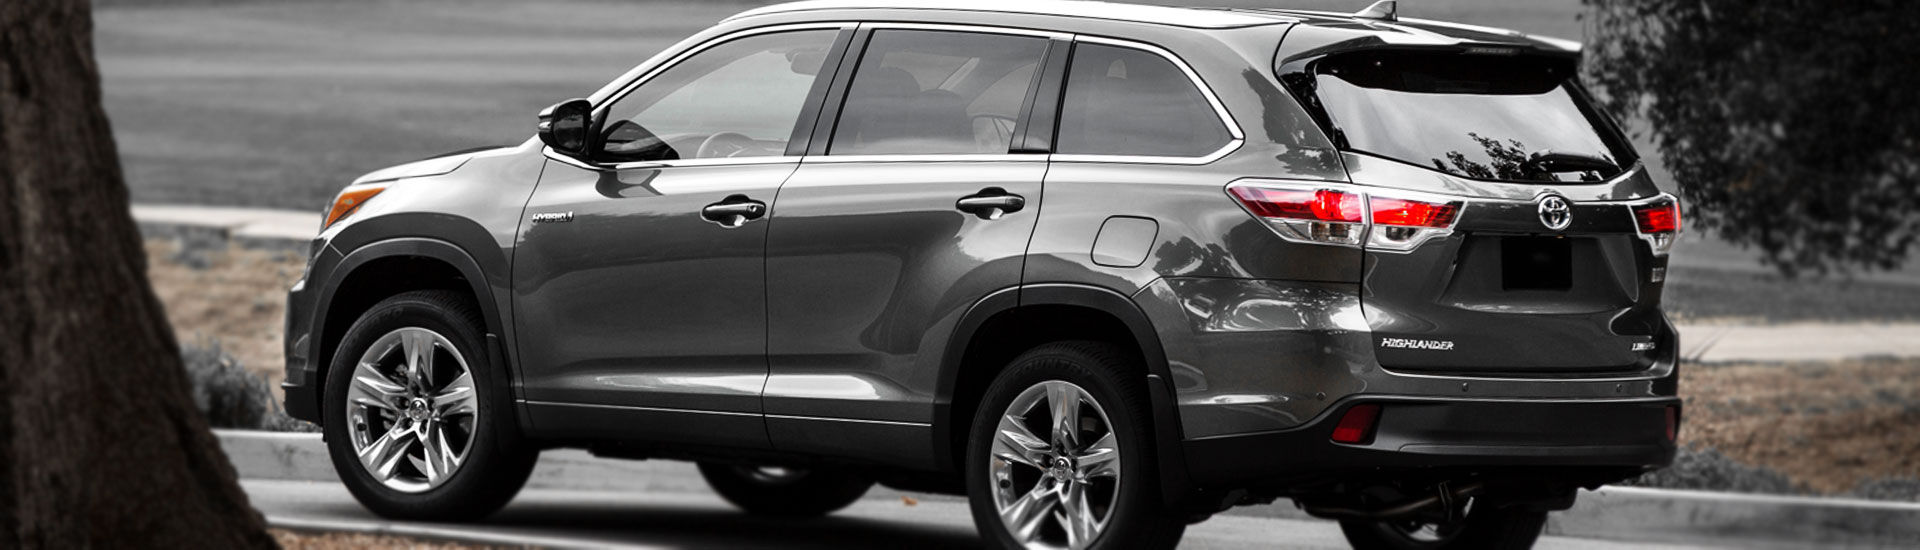 Toyota Highlander Window Tint